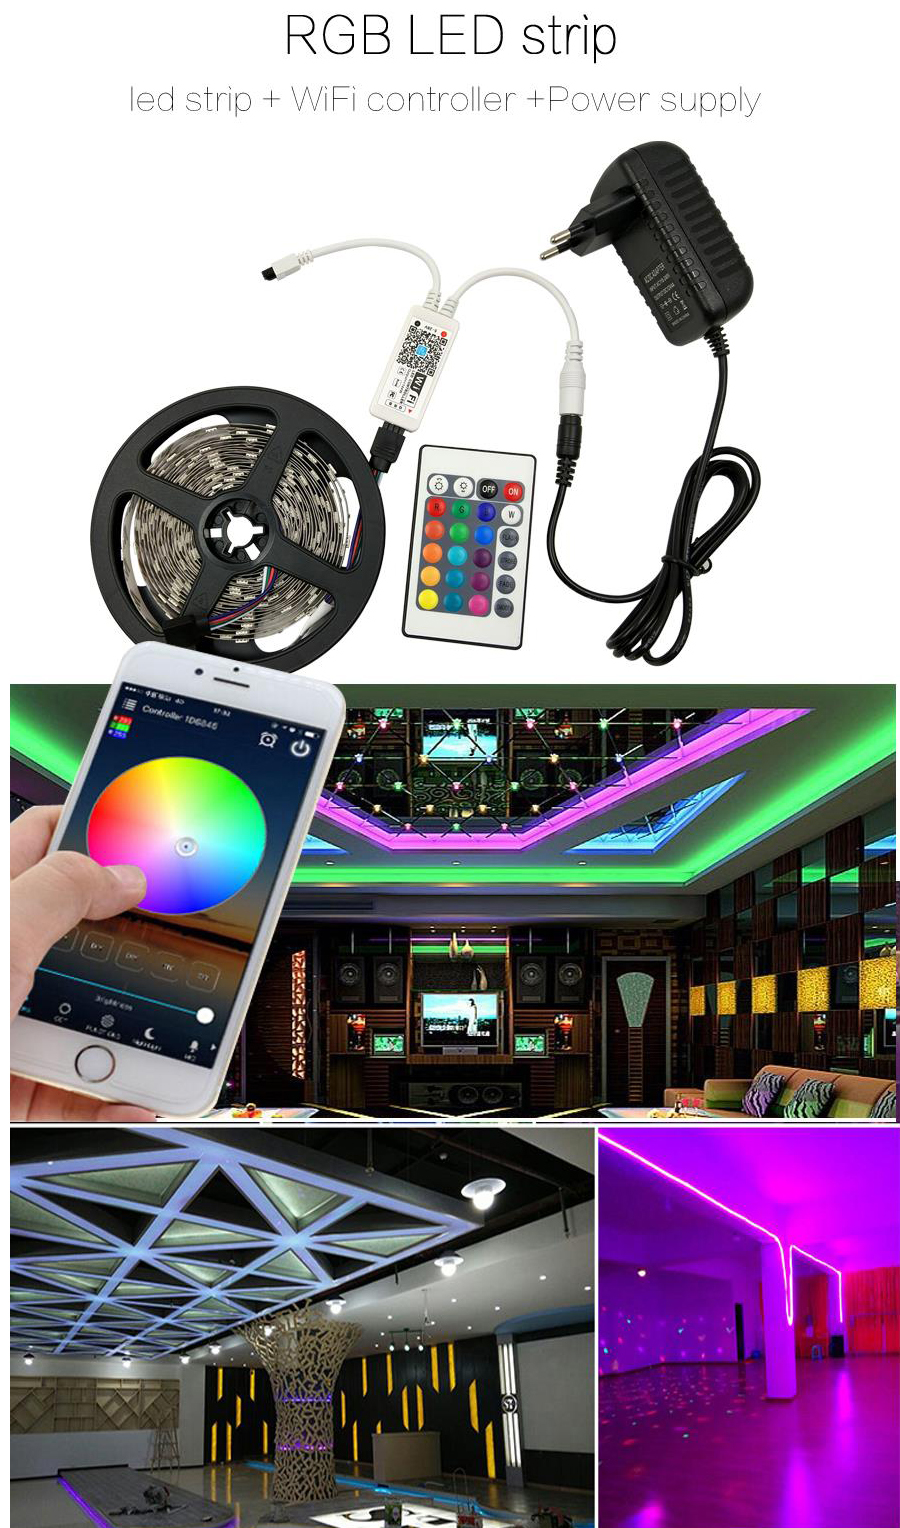 HTB1O2Gwcq5s3KVjSZFNq6AD3FXap WIFI LED Strip light 10M 5M SMD RGB 2835 5050 diode led tape ribbon Waterproof led tape and remote controller with adapter set